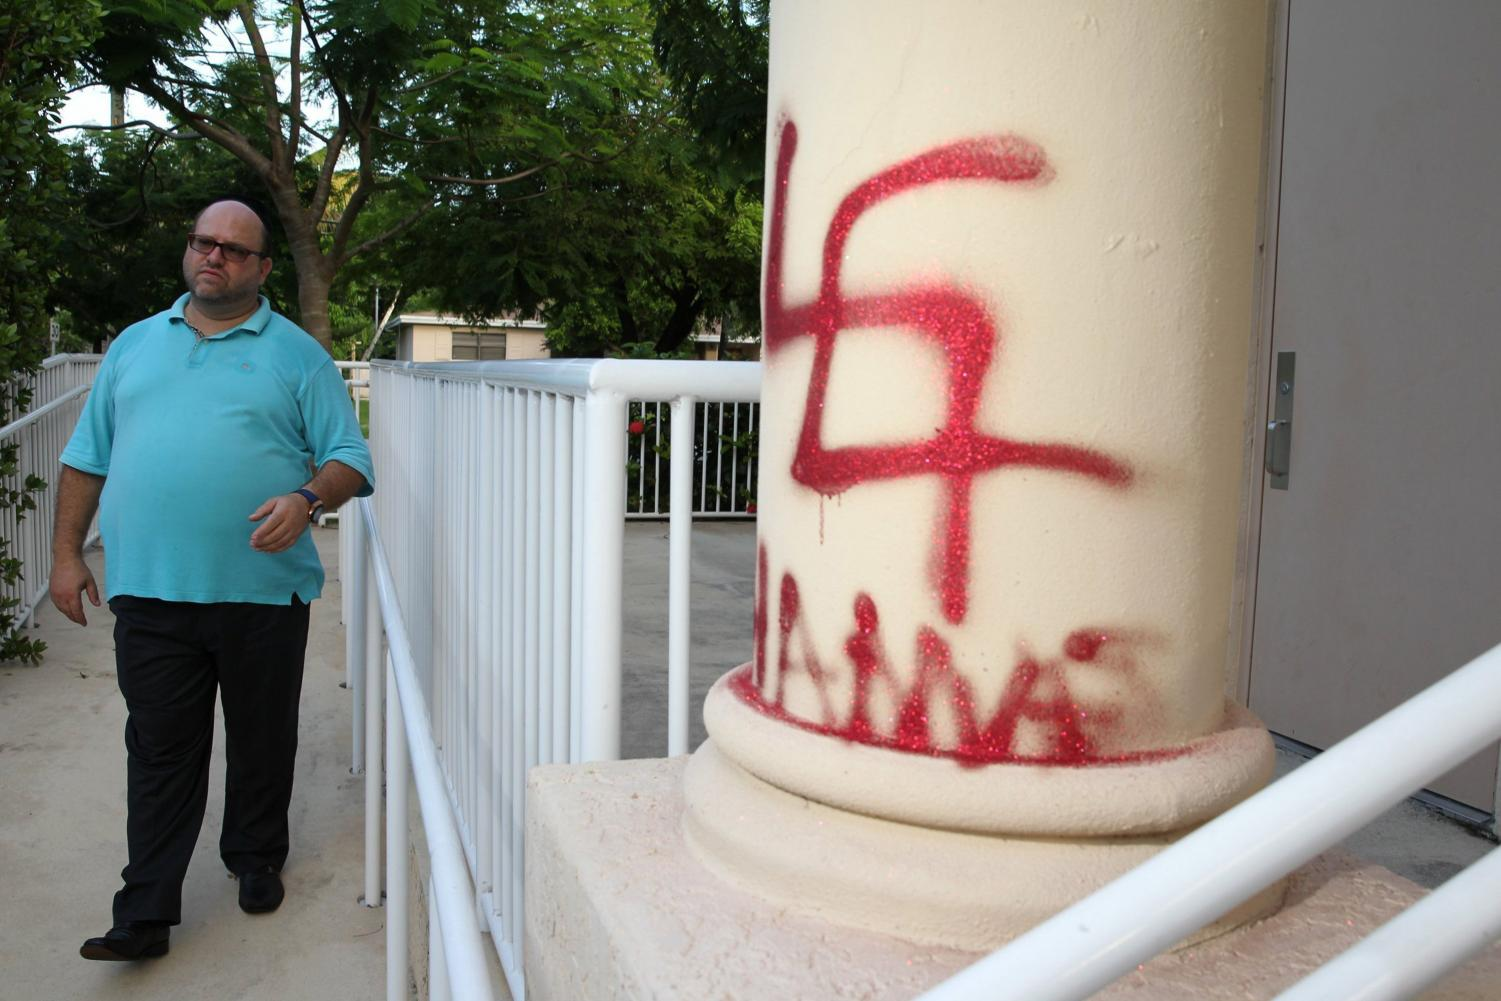 Yona Lunger, who is a part of his neighborhood watch group, was patrolling an area in Northeast Miami-Dade early Monday, July 28, 2014 when he found anti-semitic painting on the Tora V'Emunah temple at 1:30am in Miami, Fla.